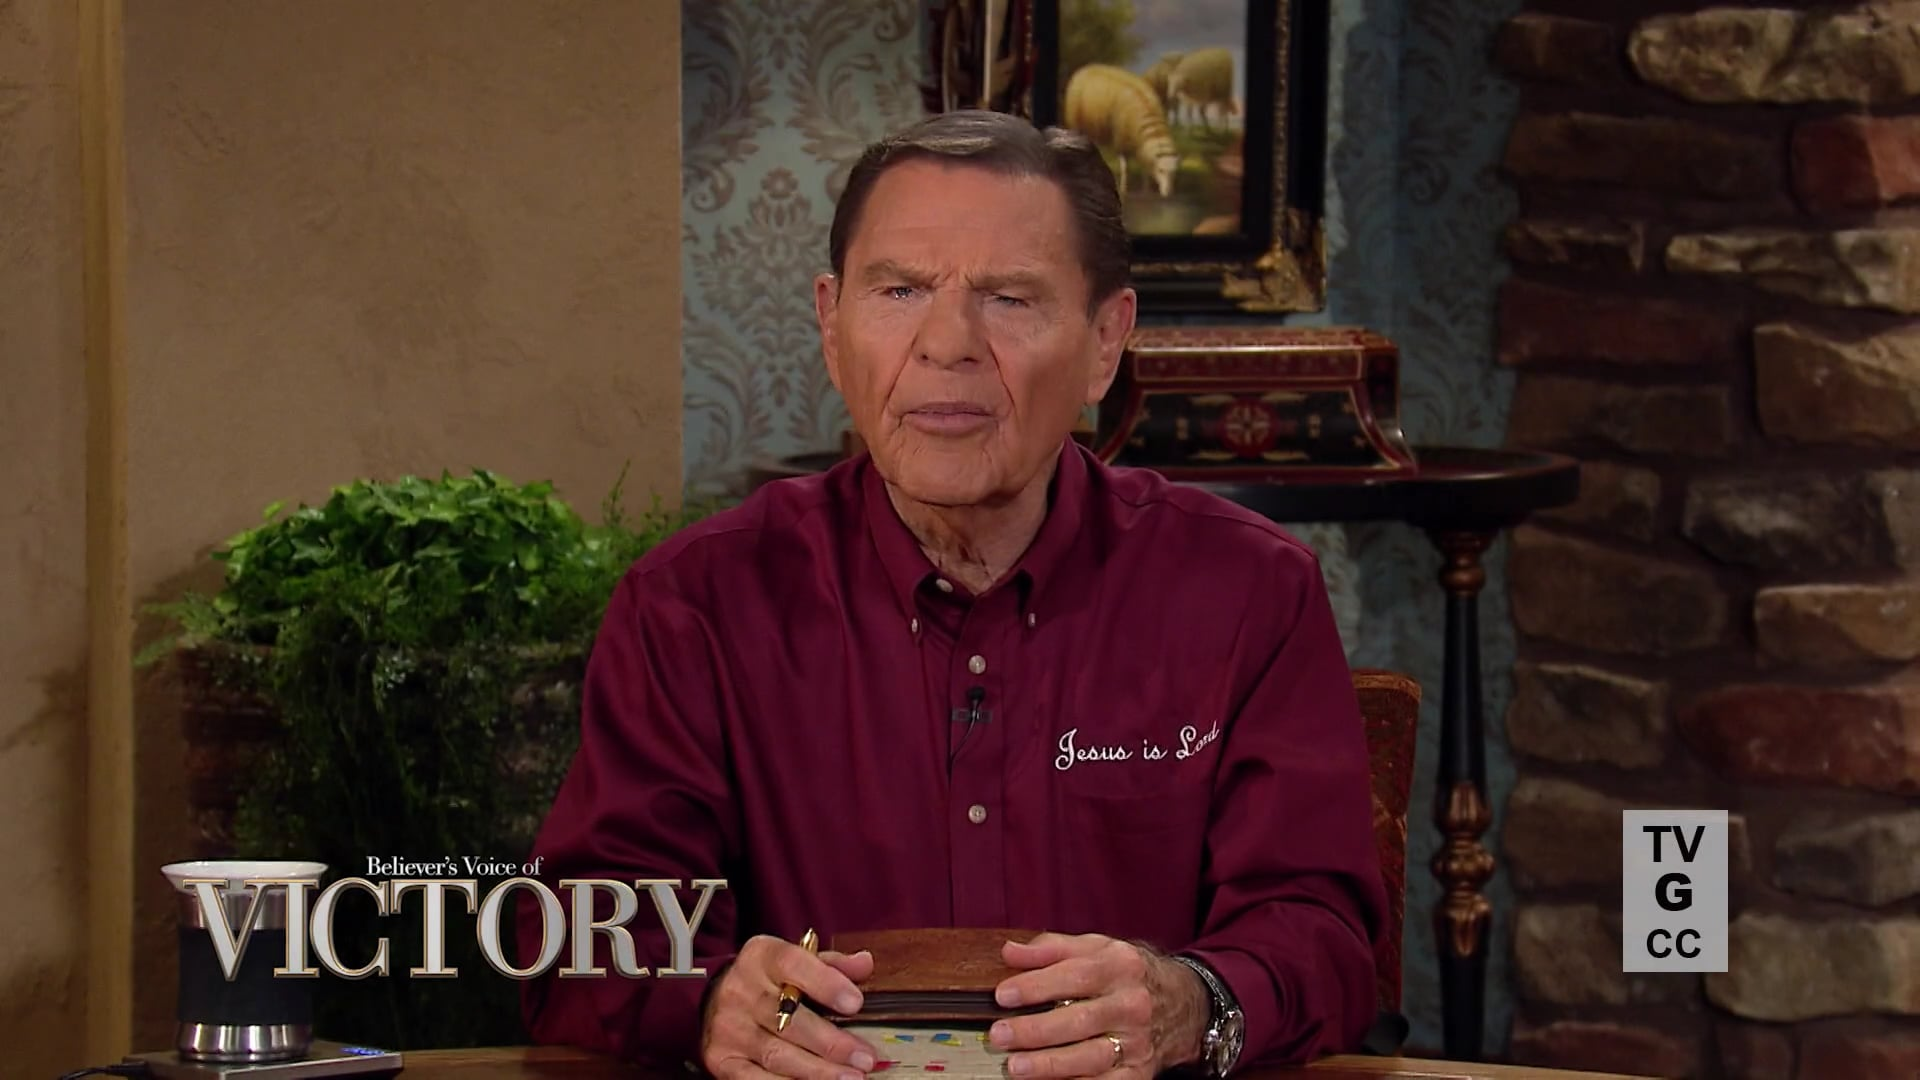 Wondering if God will heal you? Watch Believer's Voice of Victory as Kenneth Copeland teaches you why it's always been God's will to heal you. Learn how to reach out and take what Jesus provided because today is your day of healing!